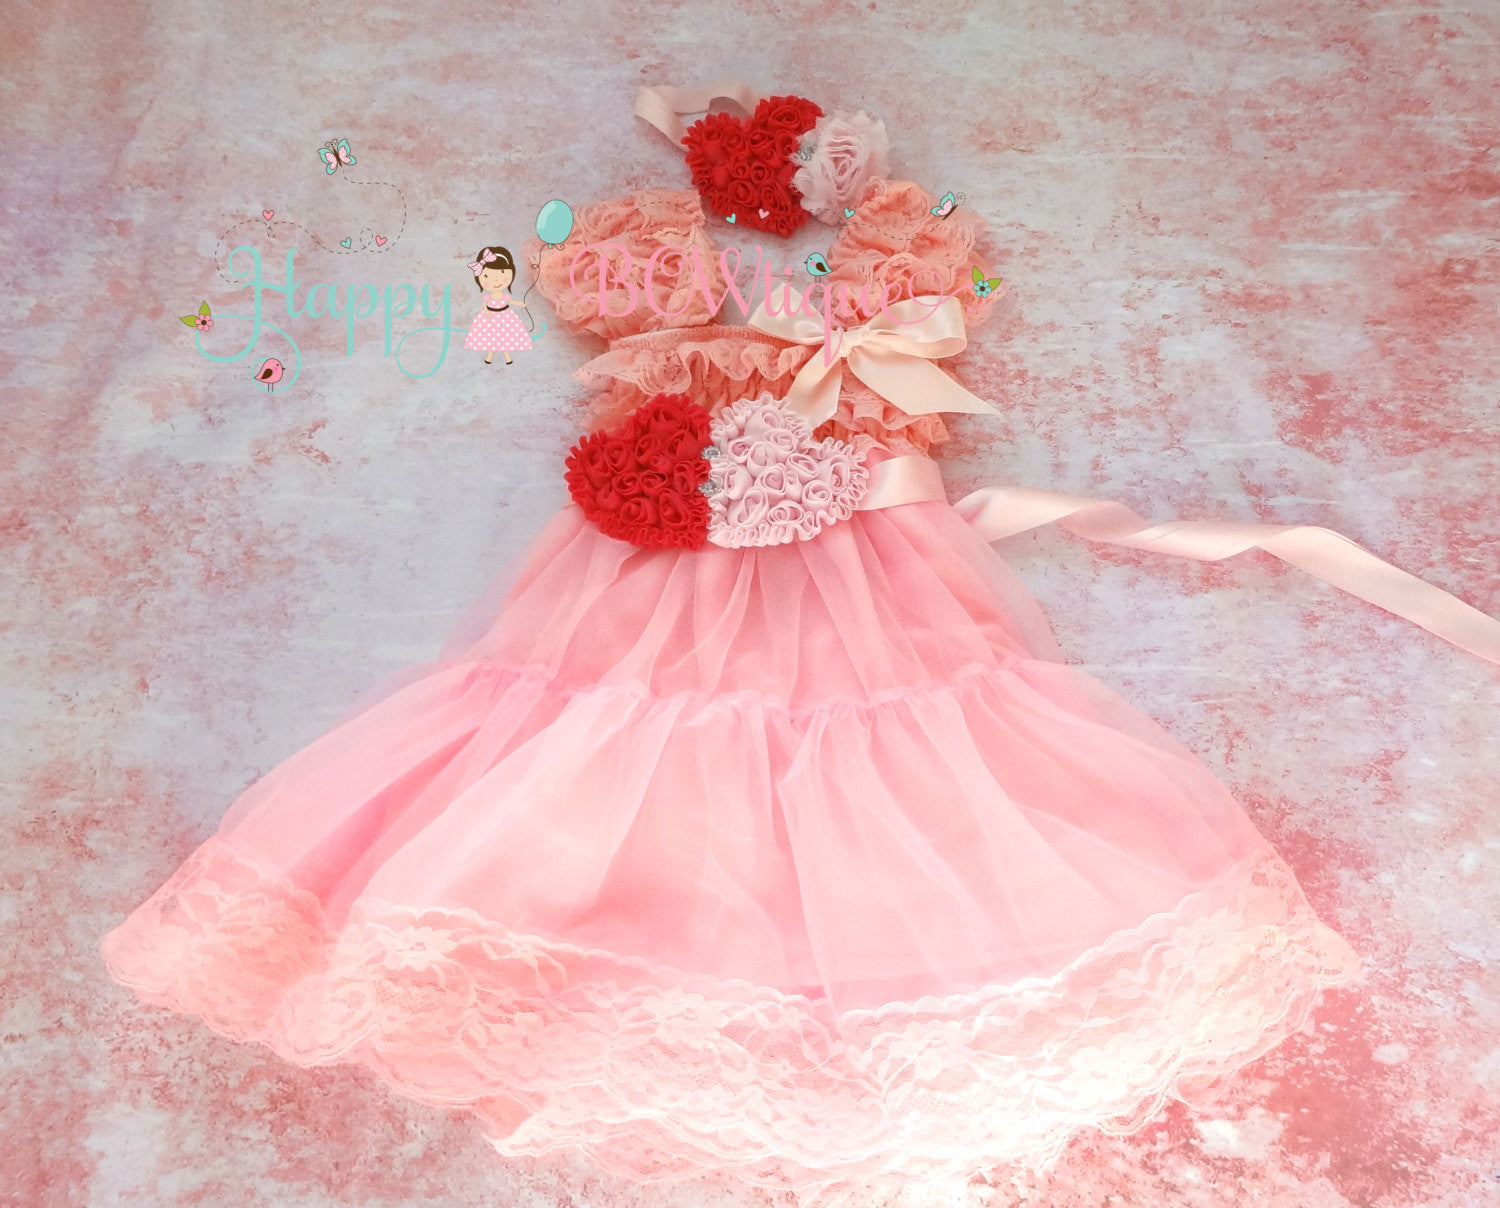 Sweetheart Pink Duo Hearts Chiffon Lace Dress - Happy BOWtique - children's clothing, Baby Girl clothing